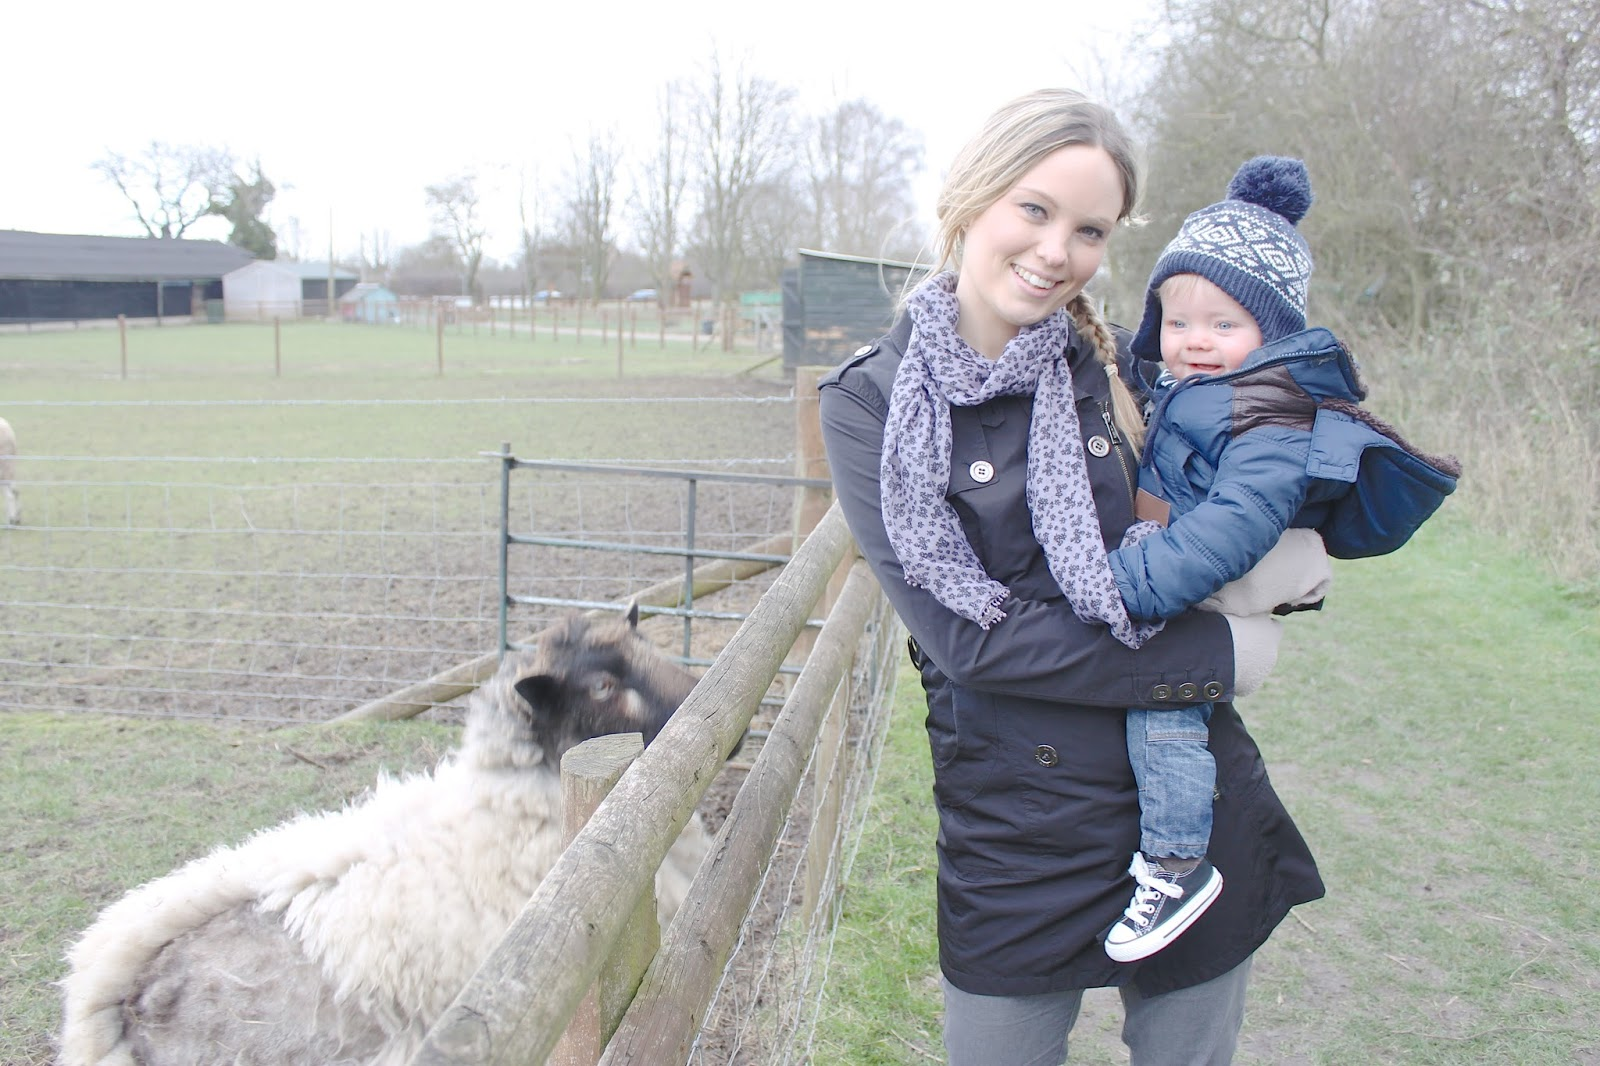 bucks goat centre, farm, farm for babies